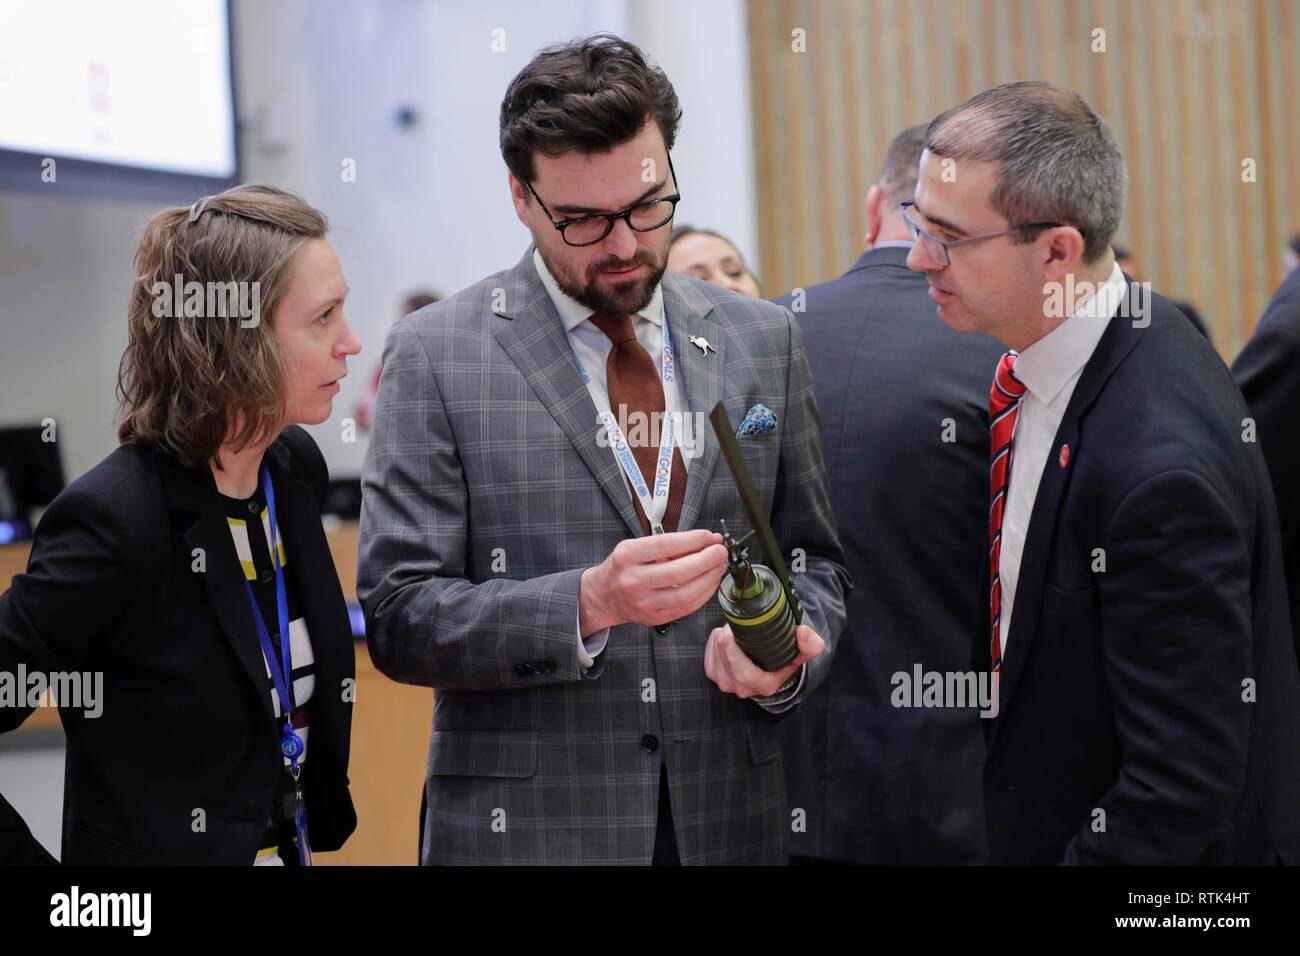 "United Nations, New York, USA, March 01, 2019 - Delegates speak with staff members from the United Nations Mine Action Service (UNMAS) at the event ""A World Free of Mines: For a Safer Tomorrow"" on the occasion of the 20th Anniversary of the entry into force of the Mine Ban Treaty today at the UN Headquarters in New York. Photo: Luiz Rampelotto/EuropaNewswire 